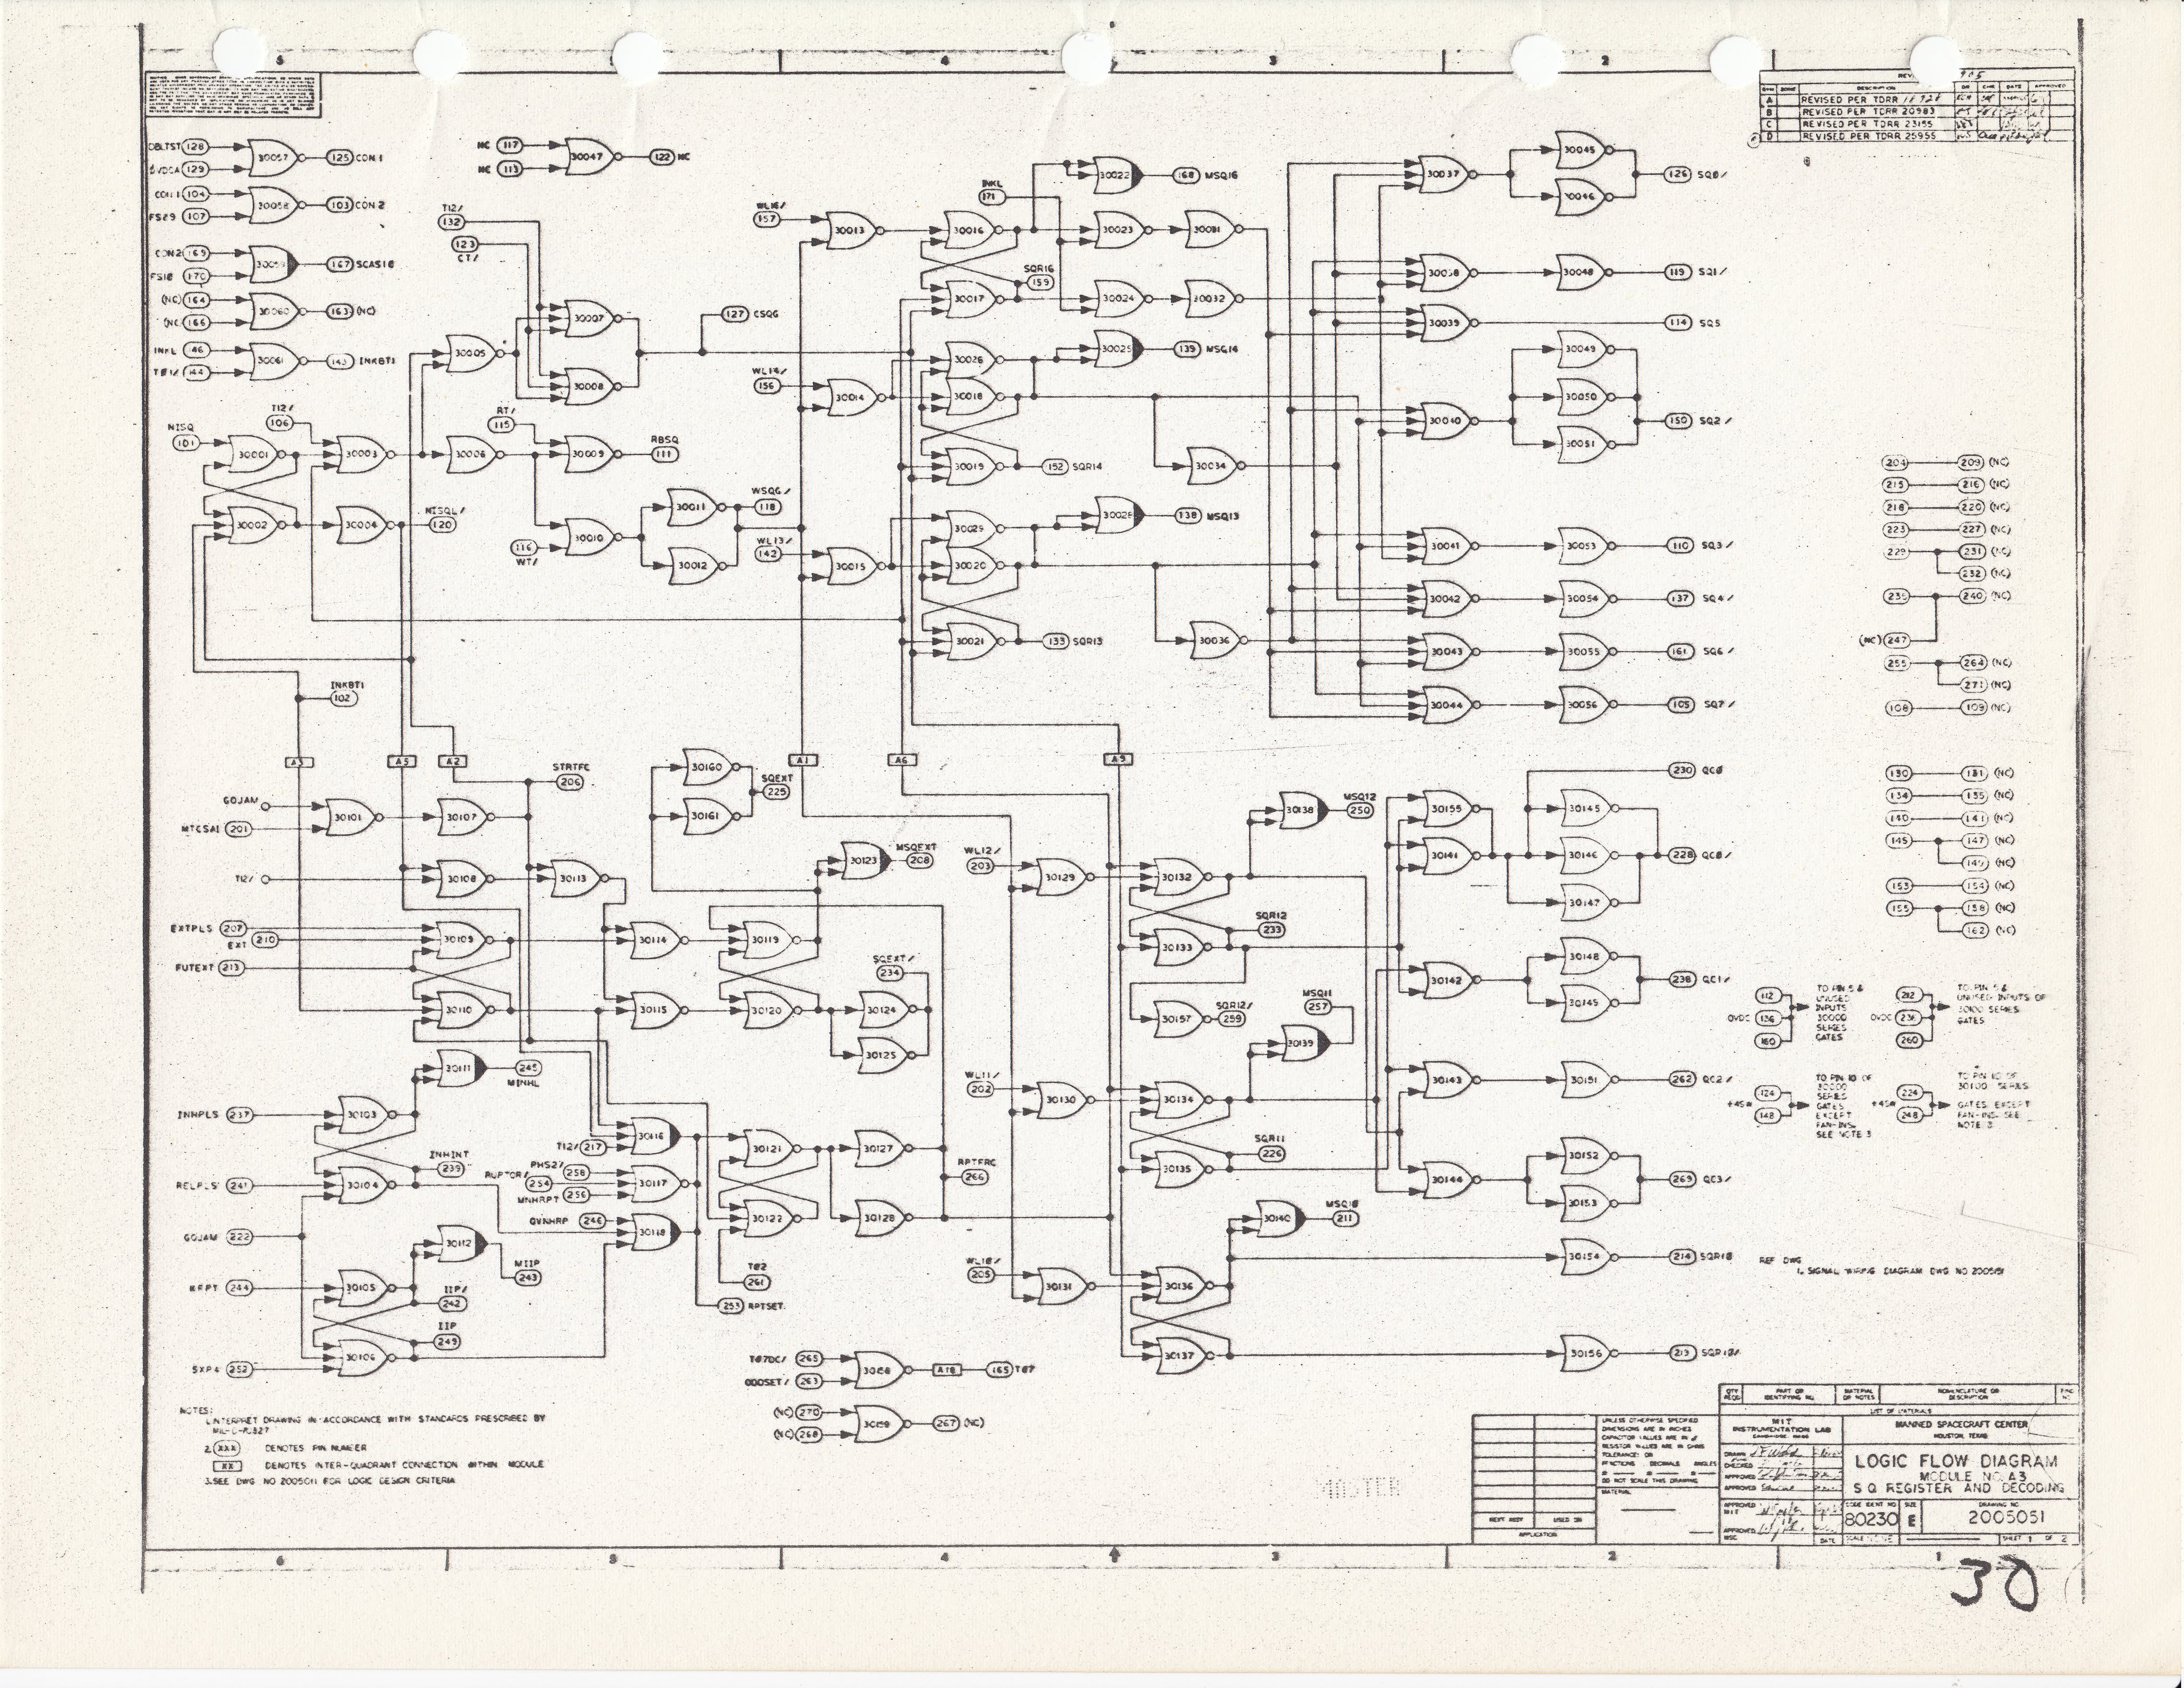 Virtual Agc Electrical Mechanical Page Of Fortune Circuit Diagram Electronic Diagrams Schematics 2005051d